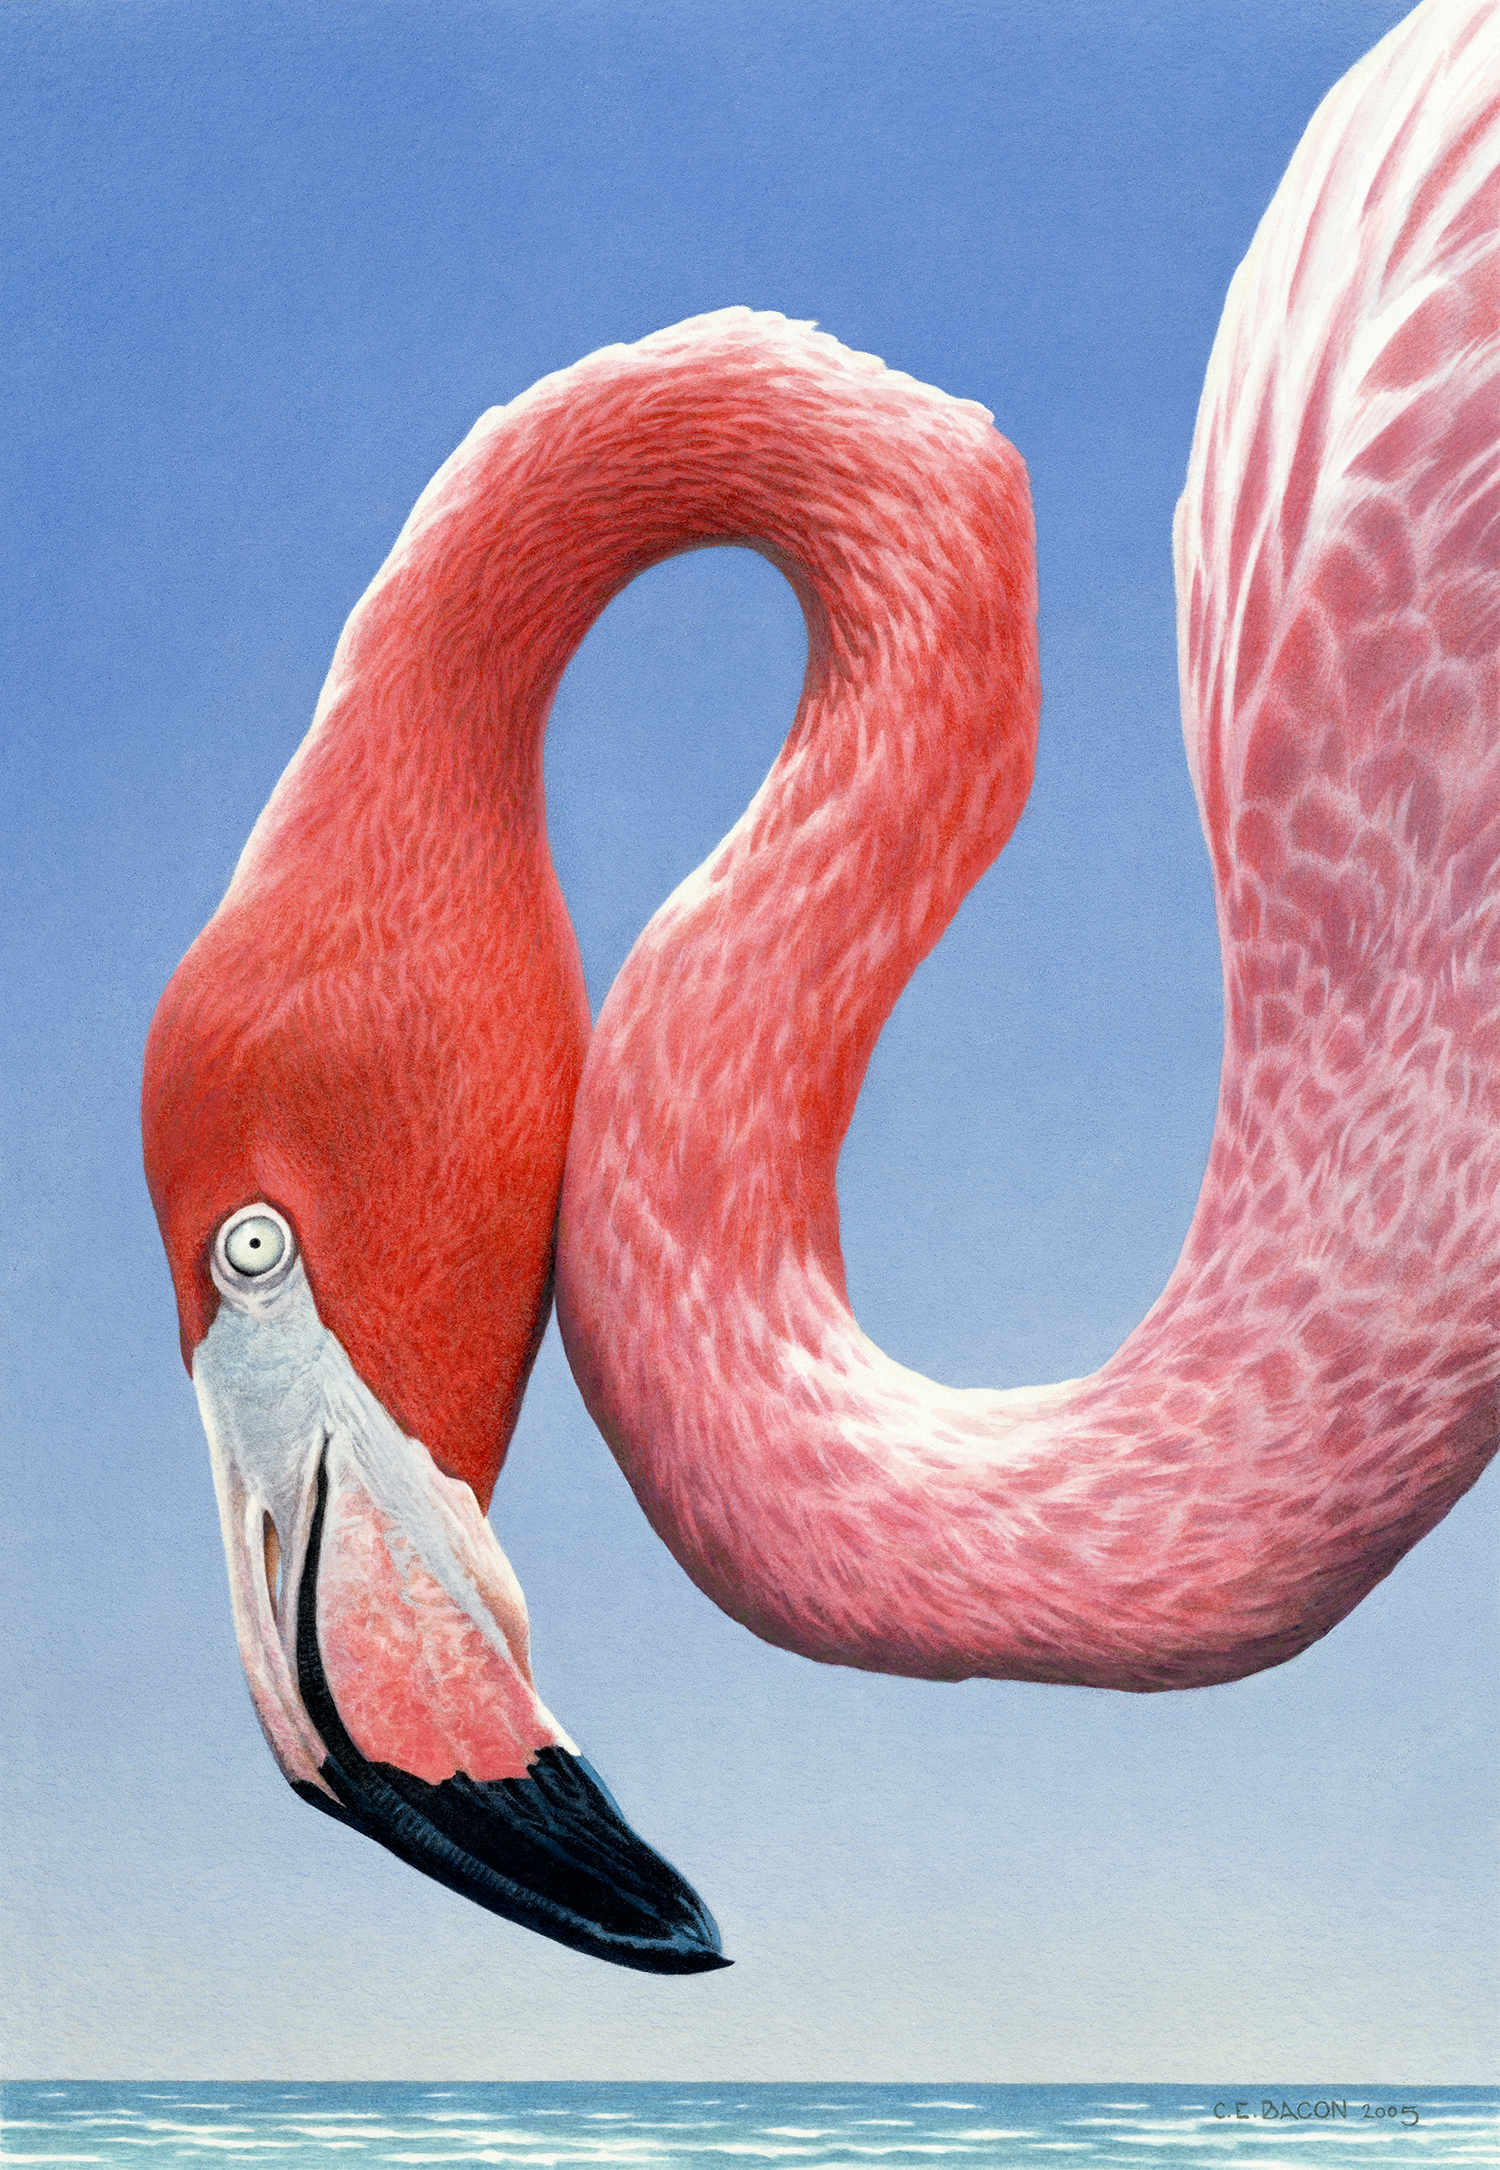 Study-for-Greater-Flamingo-for-new-site.jpg